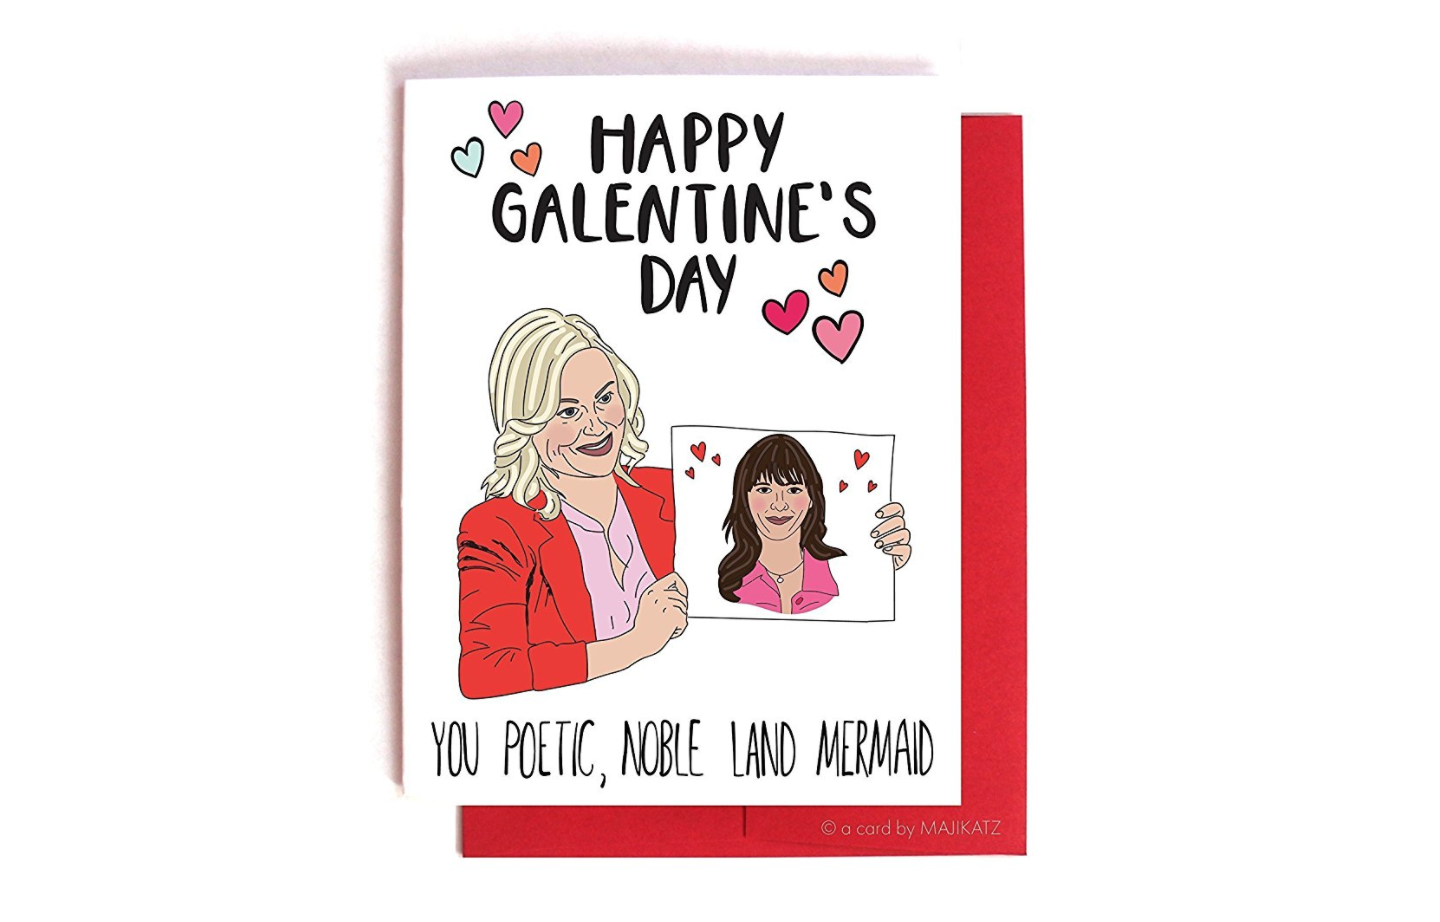 Galentines Day Gift Ideas How To Create A Cute Care Package